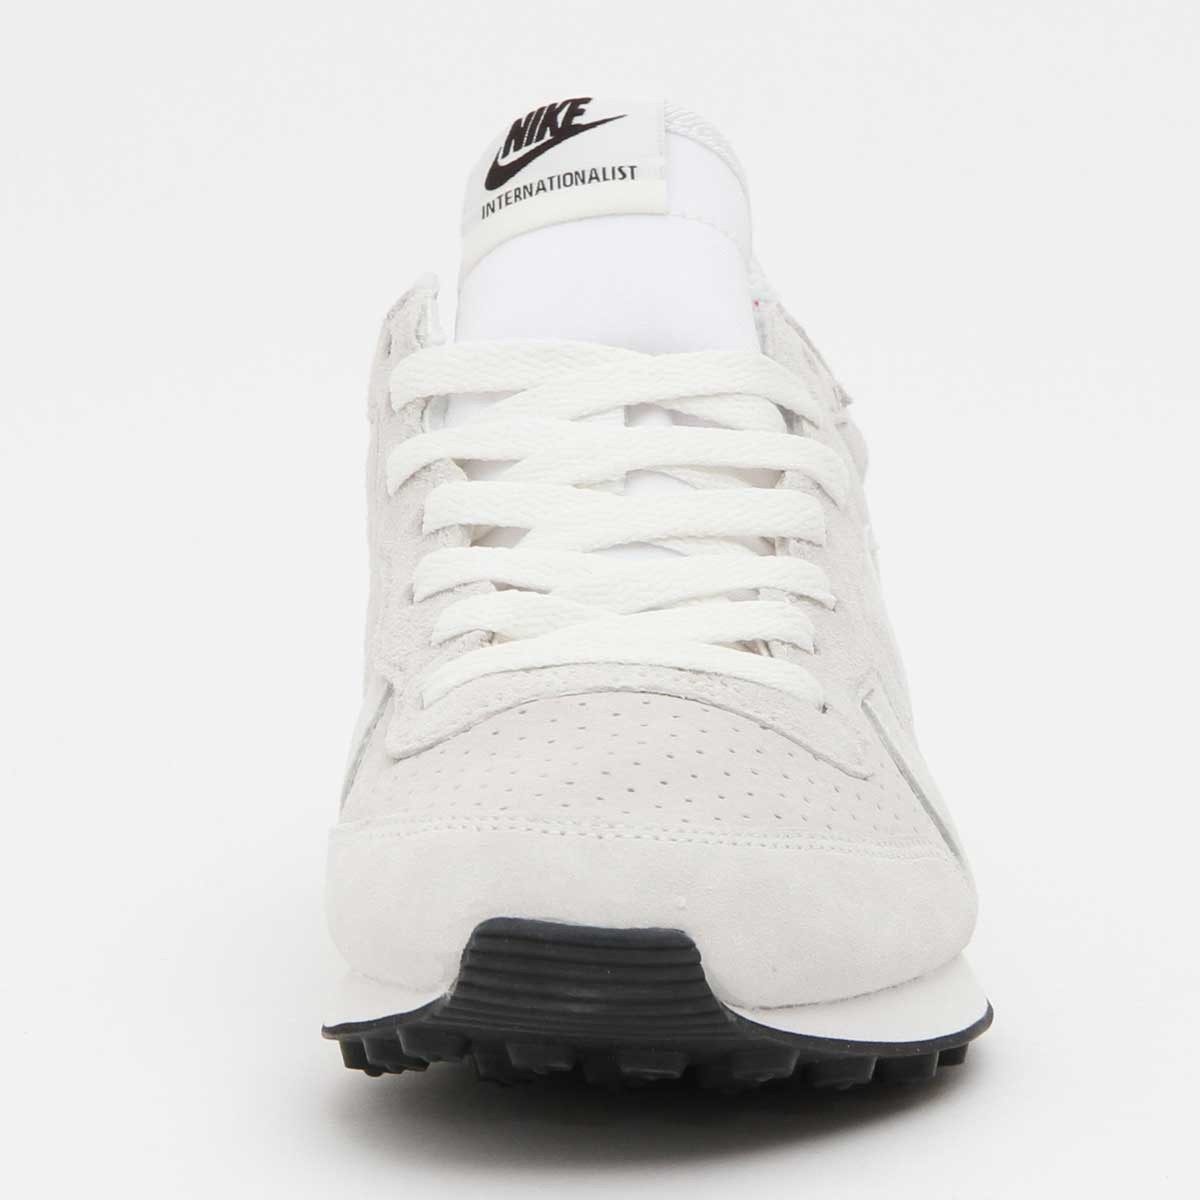 nike internationalist blanche homme